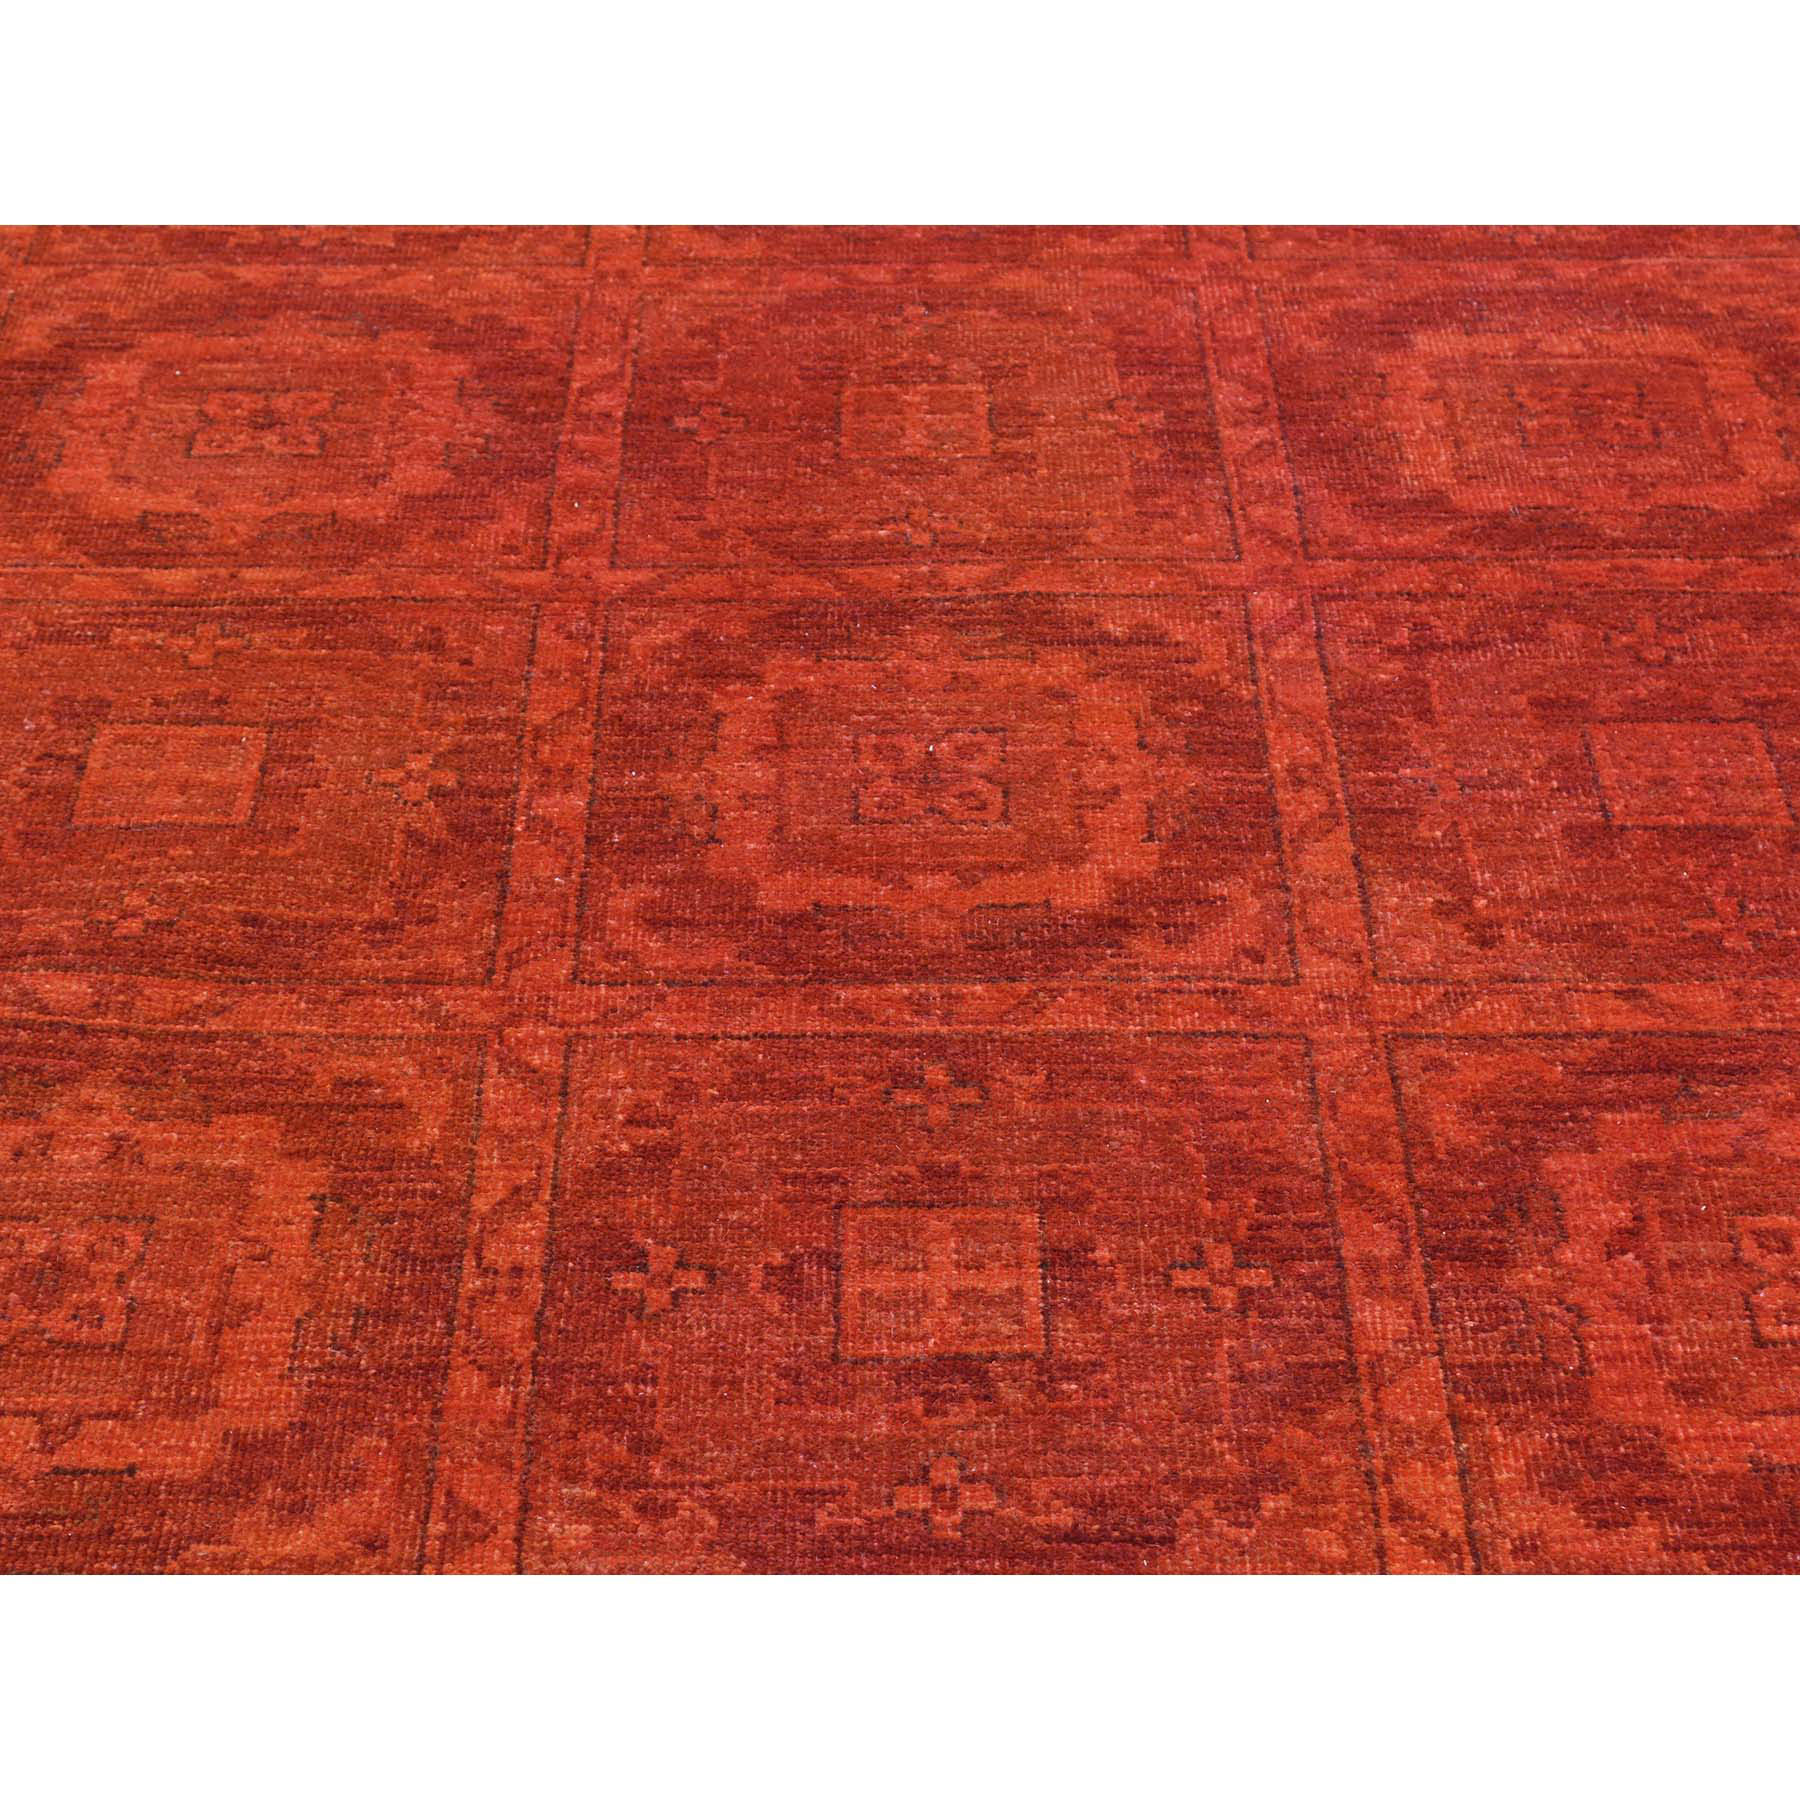 9-x12-2  Hand-Knotted Overdyed Khotan Design Pure Wool Red Oriental Rug